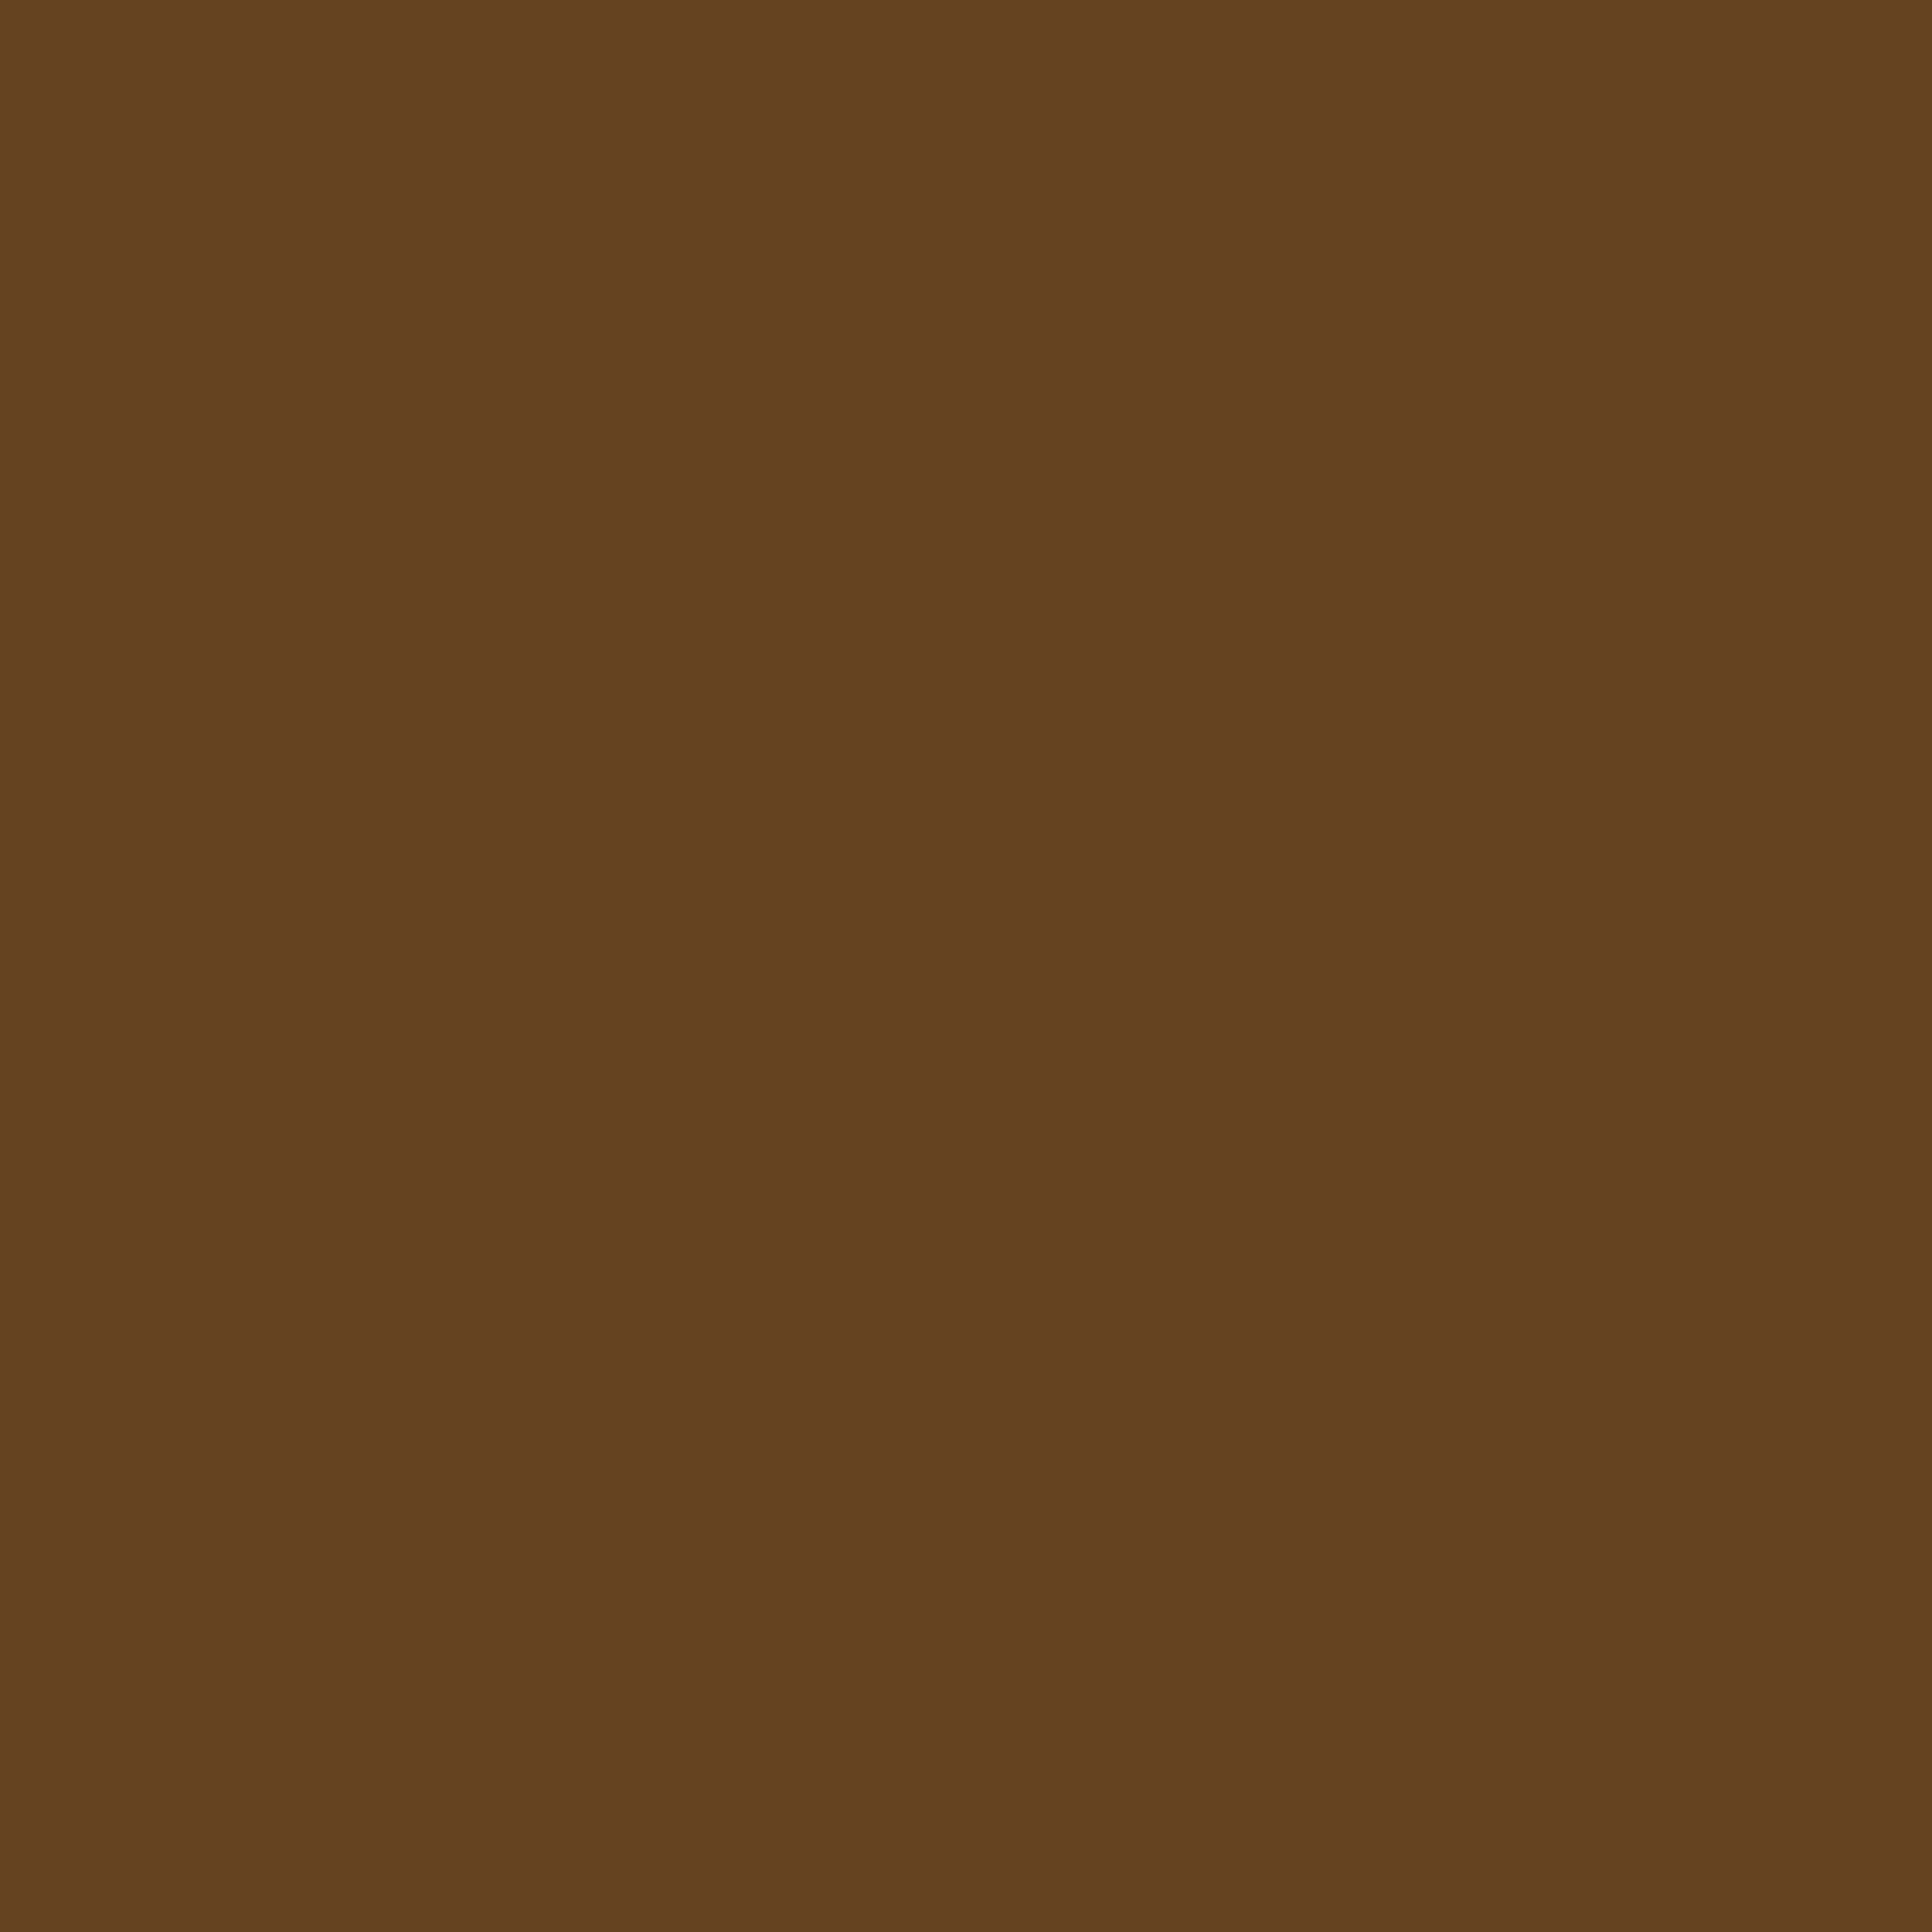 2732x2732 Otter Brown Solid Color Background